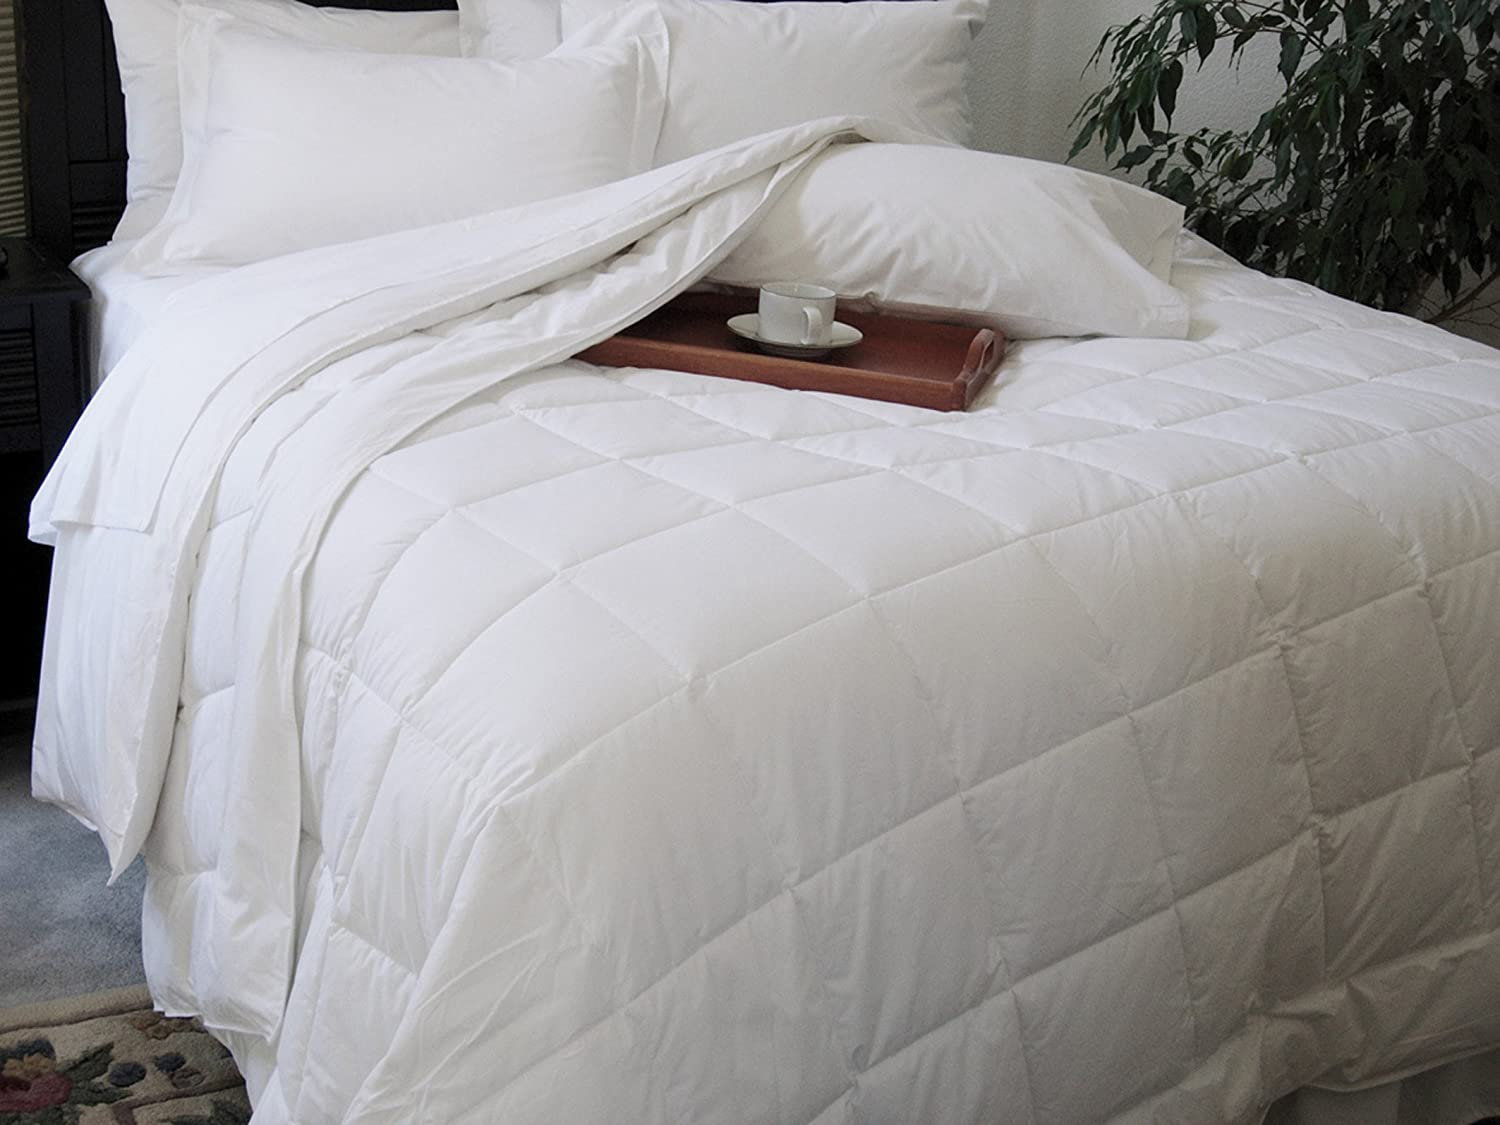 Natural Comfort Classic White Down Alternative Comforter or Blanket Year Round Filled, Full DIC001-Full